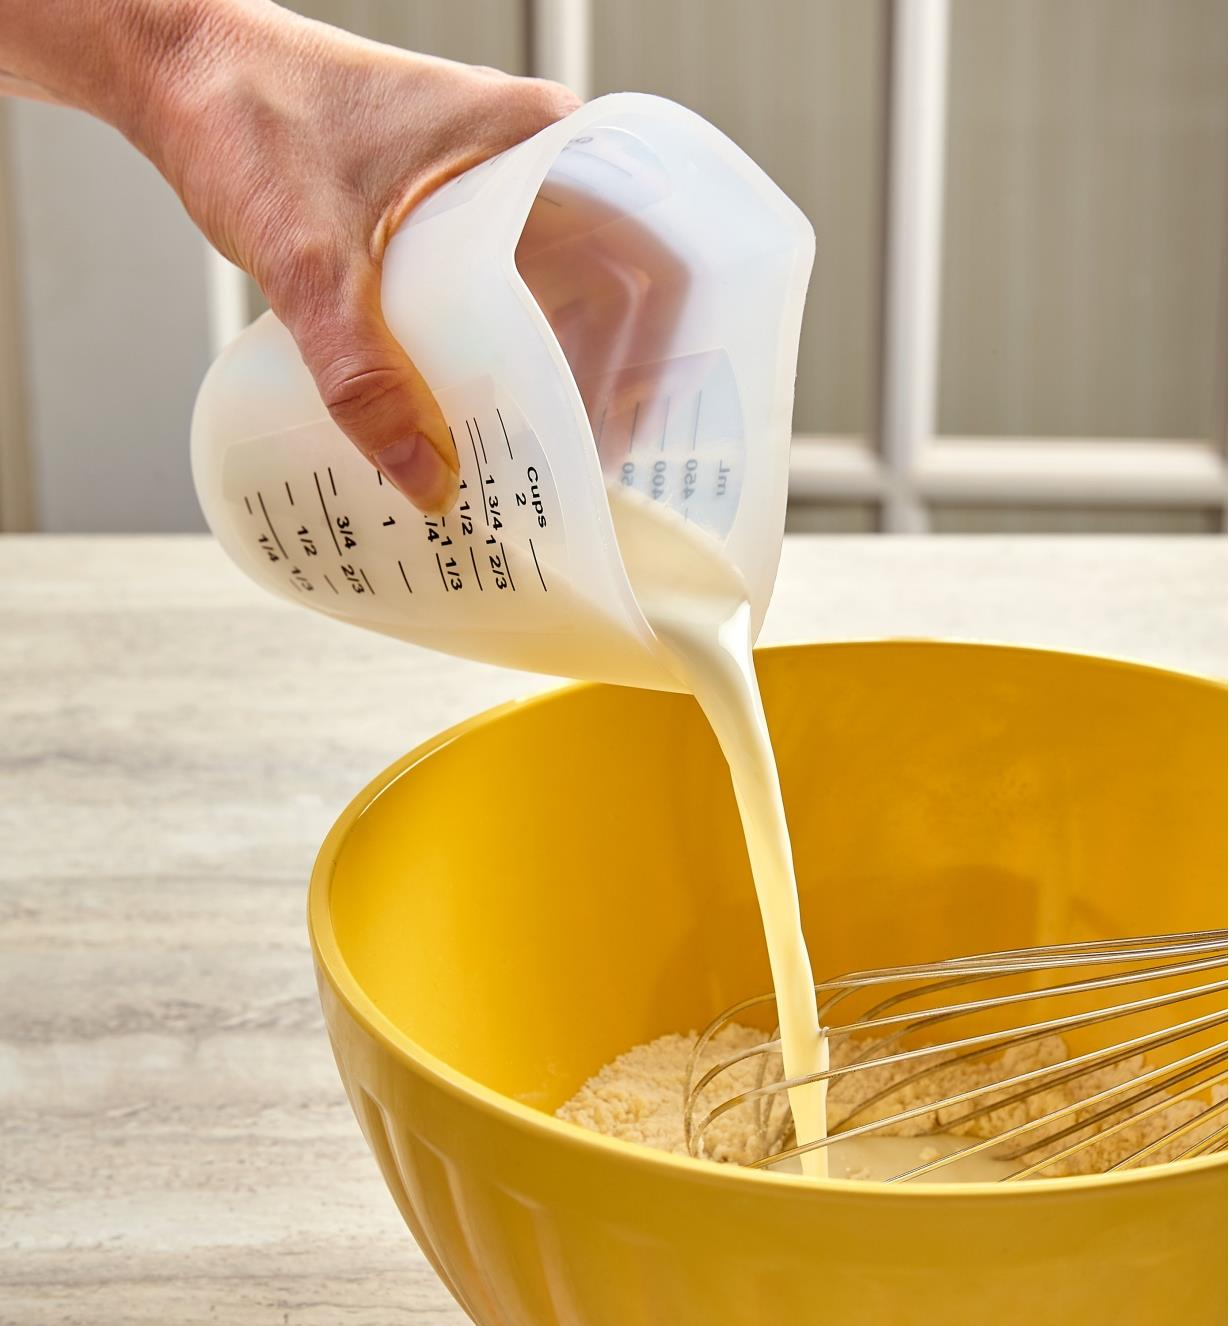 Squeezing the sides of the flexible silicone measuring cup narrows the spout, controlling the pour of milk into a mixing bowl